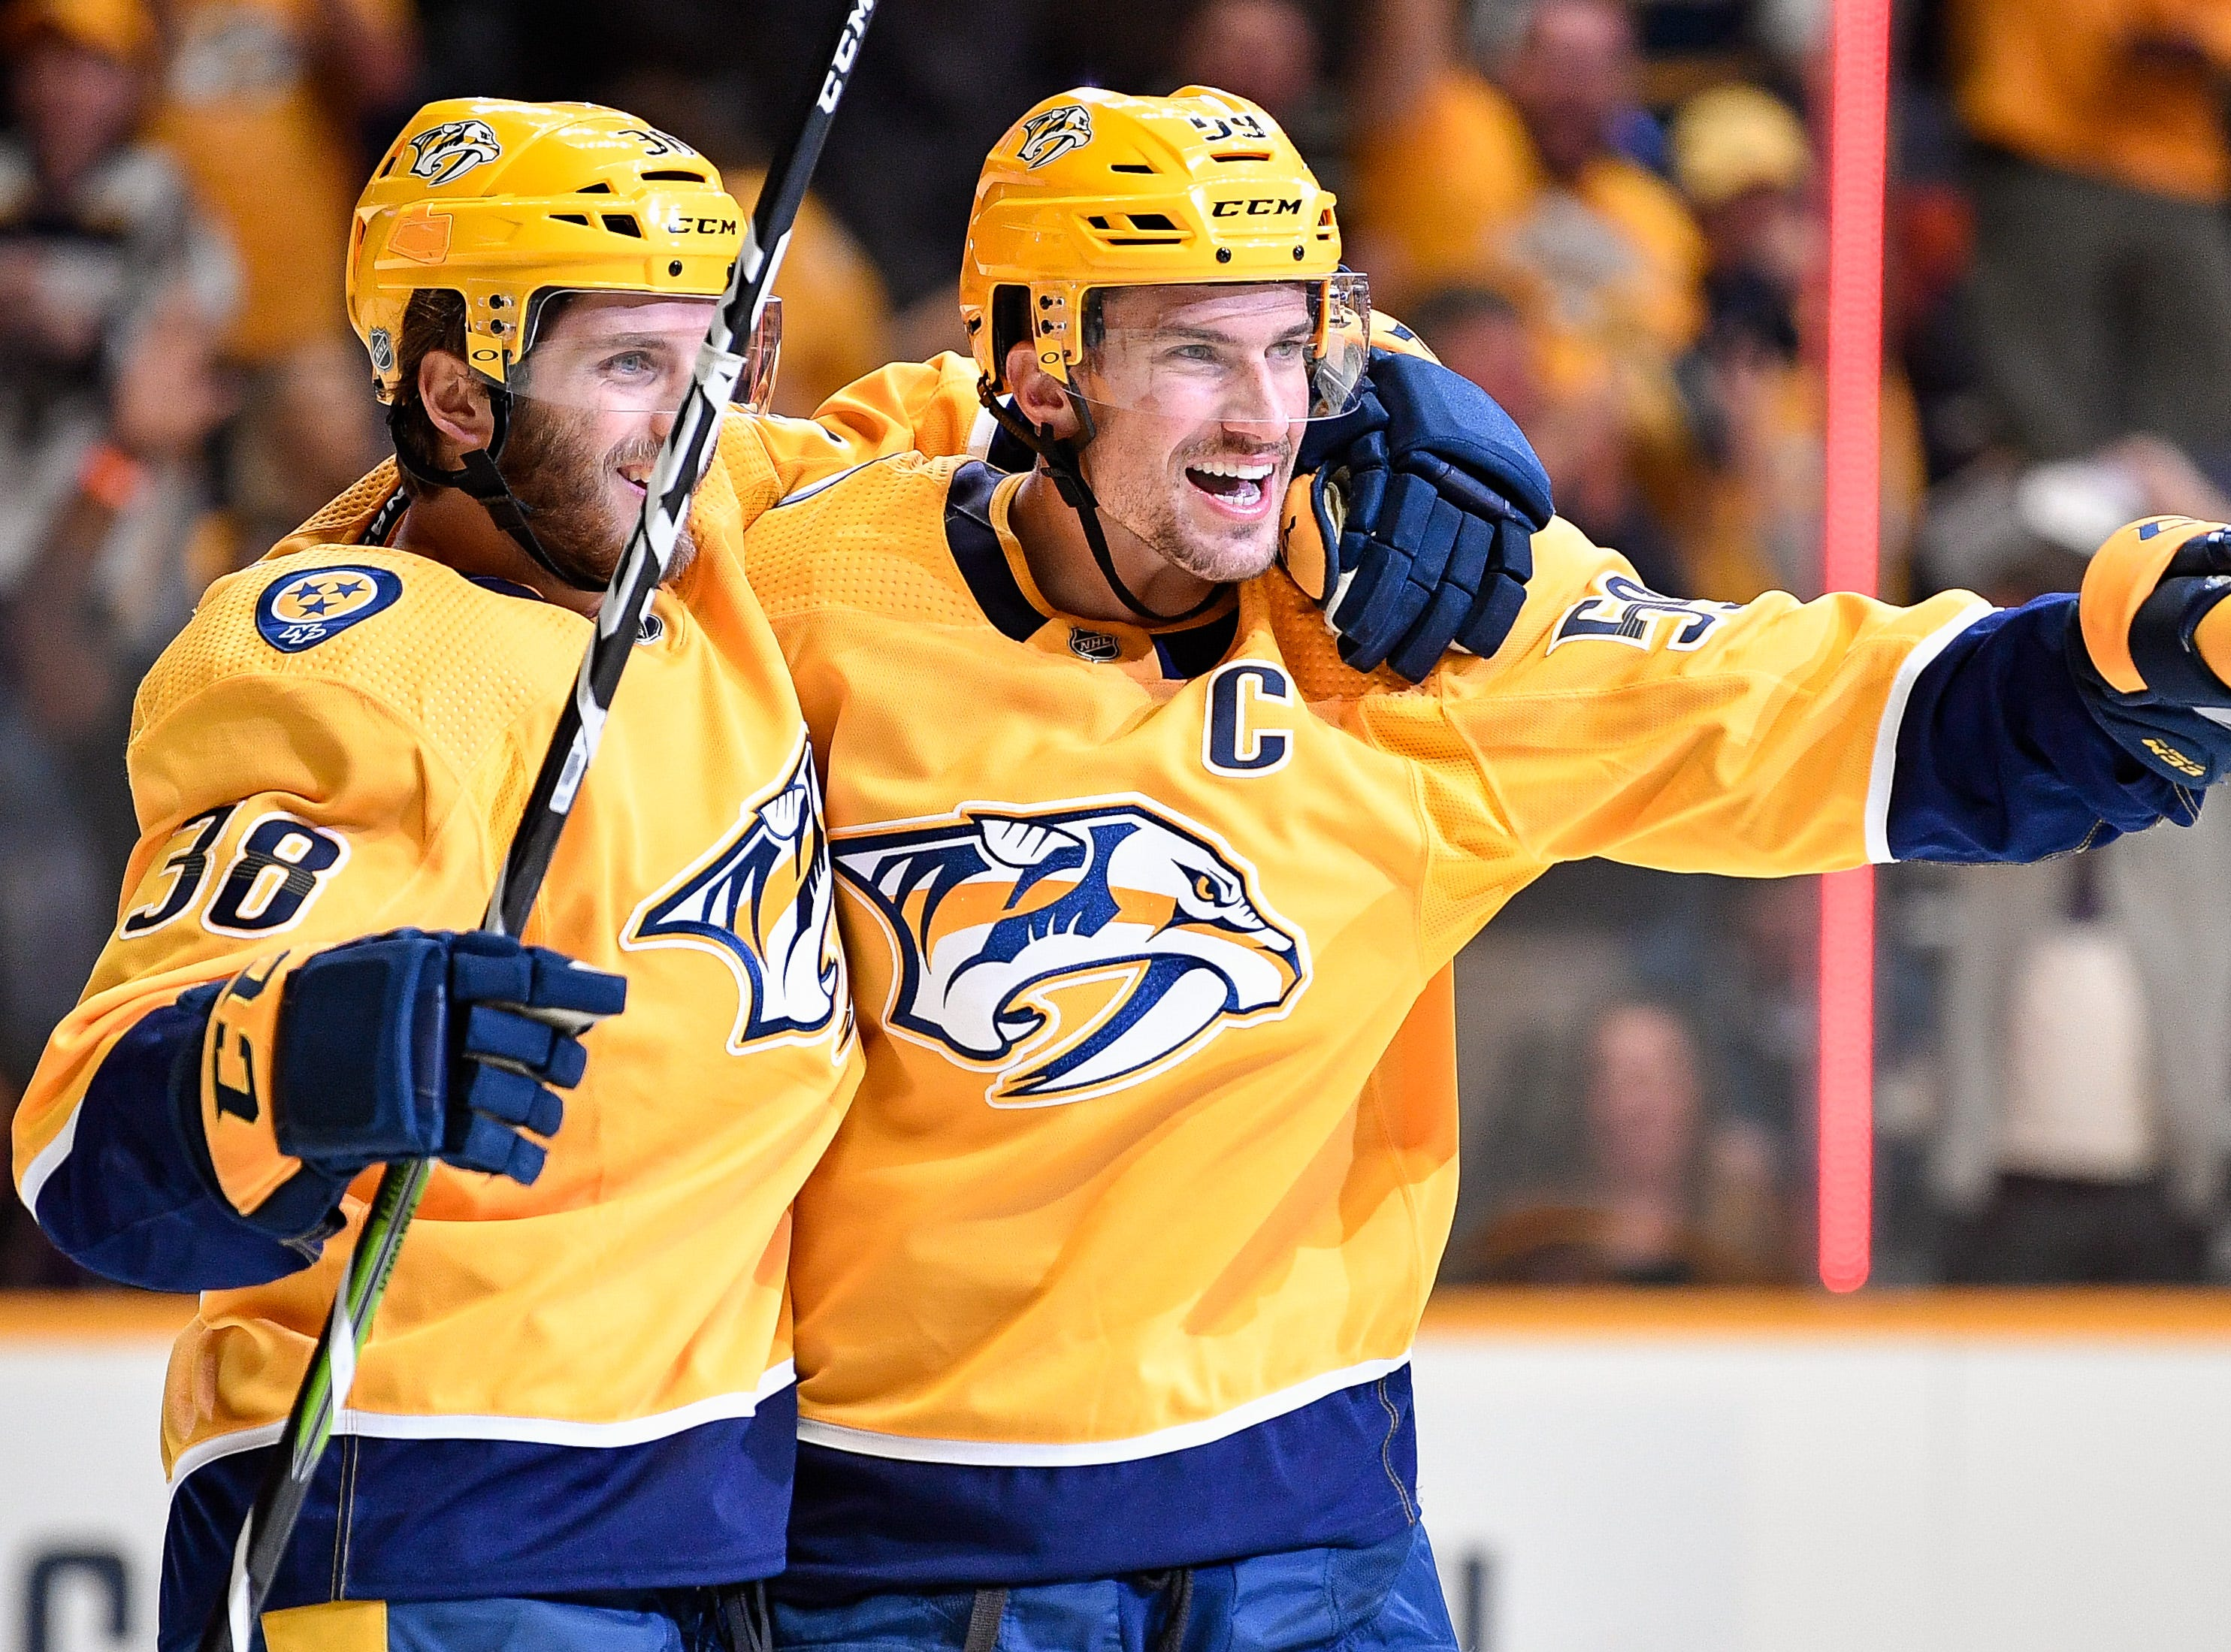 Oct. 11: Predators 3, Jets 0: Nashville Predators defenseman Roman Josi (59) celebrates his goal against the Winnipeg Jets with right wing Ryan Hartman (38) during the third period at Bridgestone Arena in Nashville, Tenn., Thursday, Oct. 11, 2018.